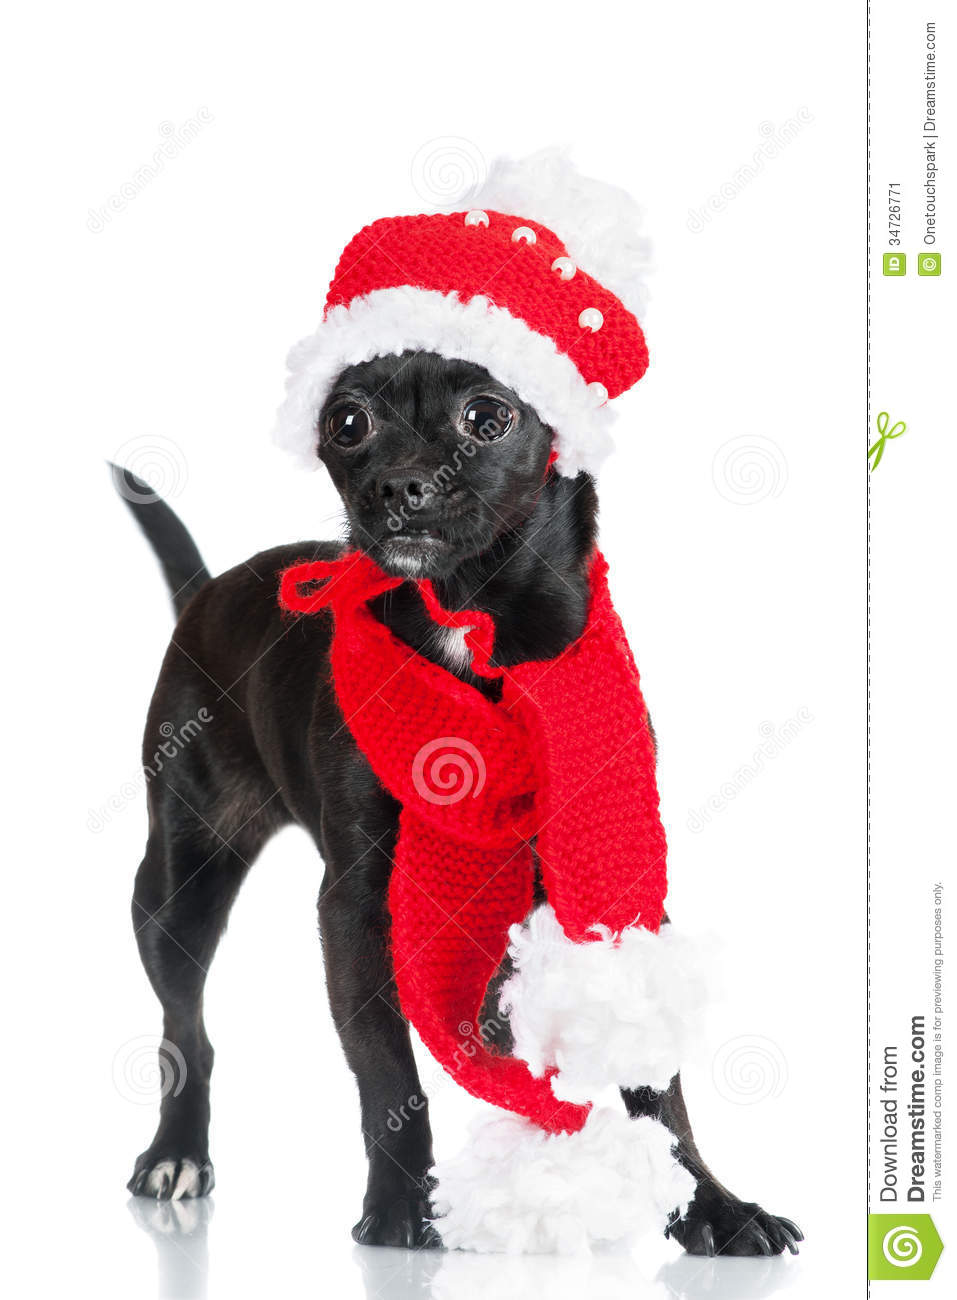 Adorable Little Black Dog In A Hat Adn Scarf Stock Image